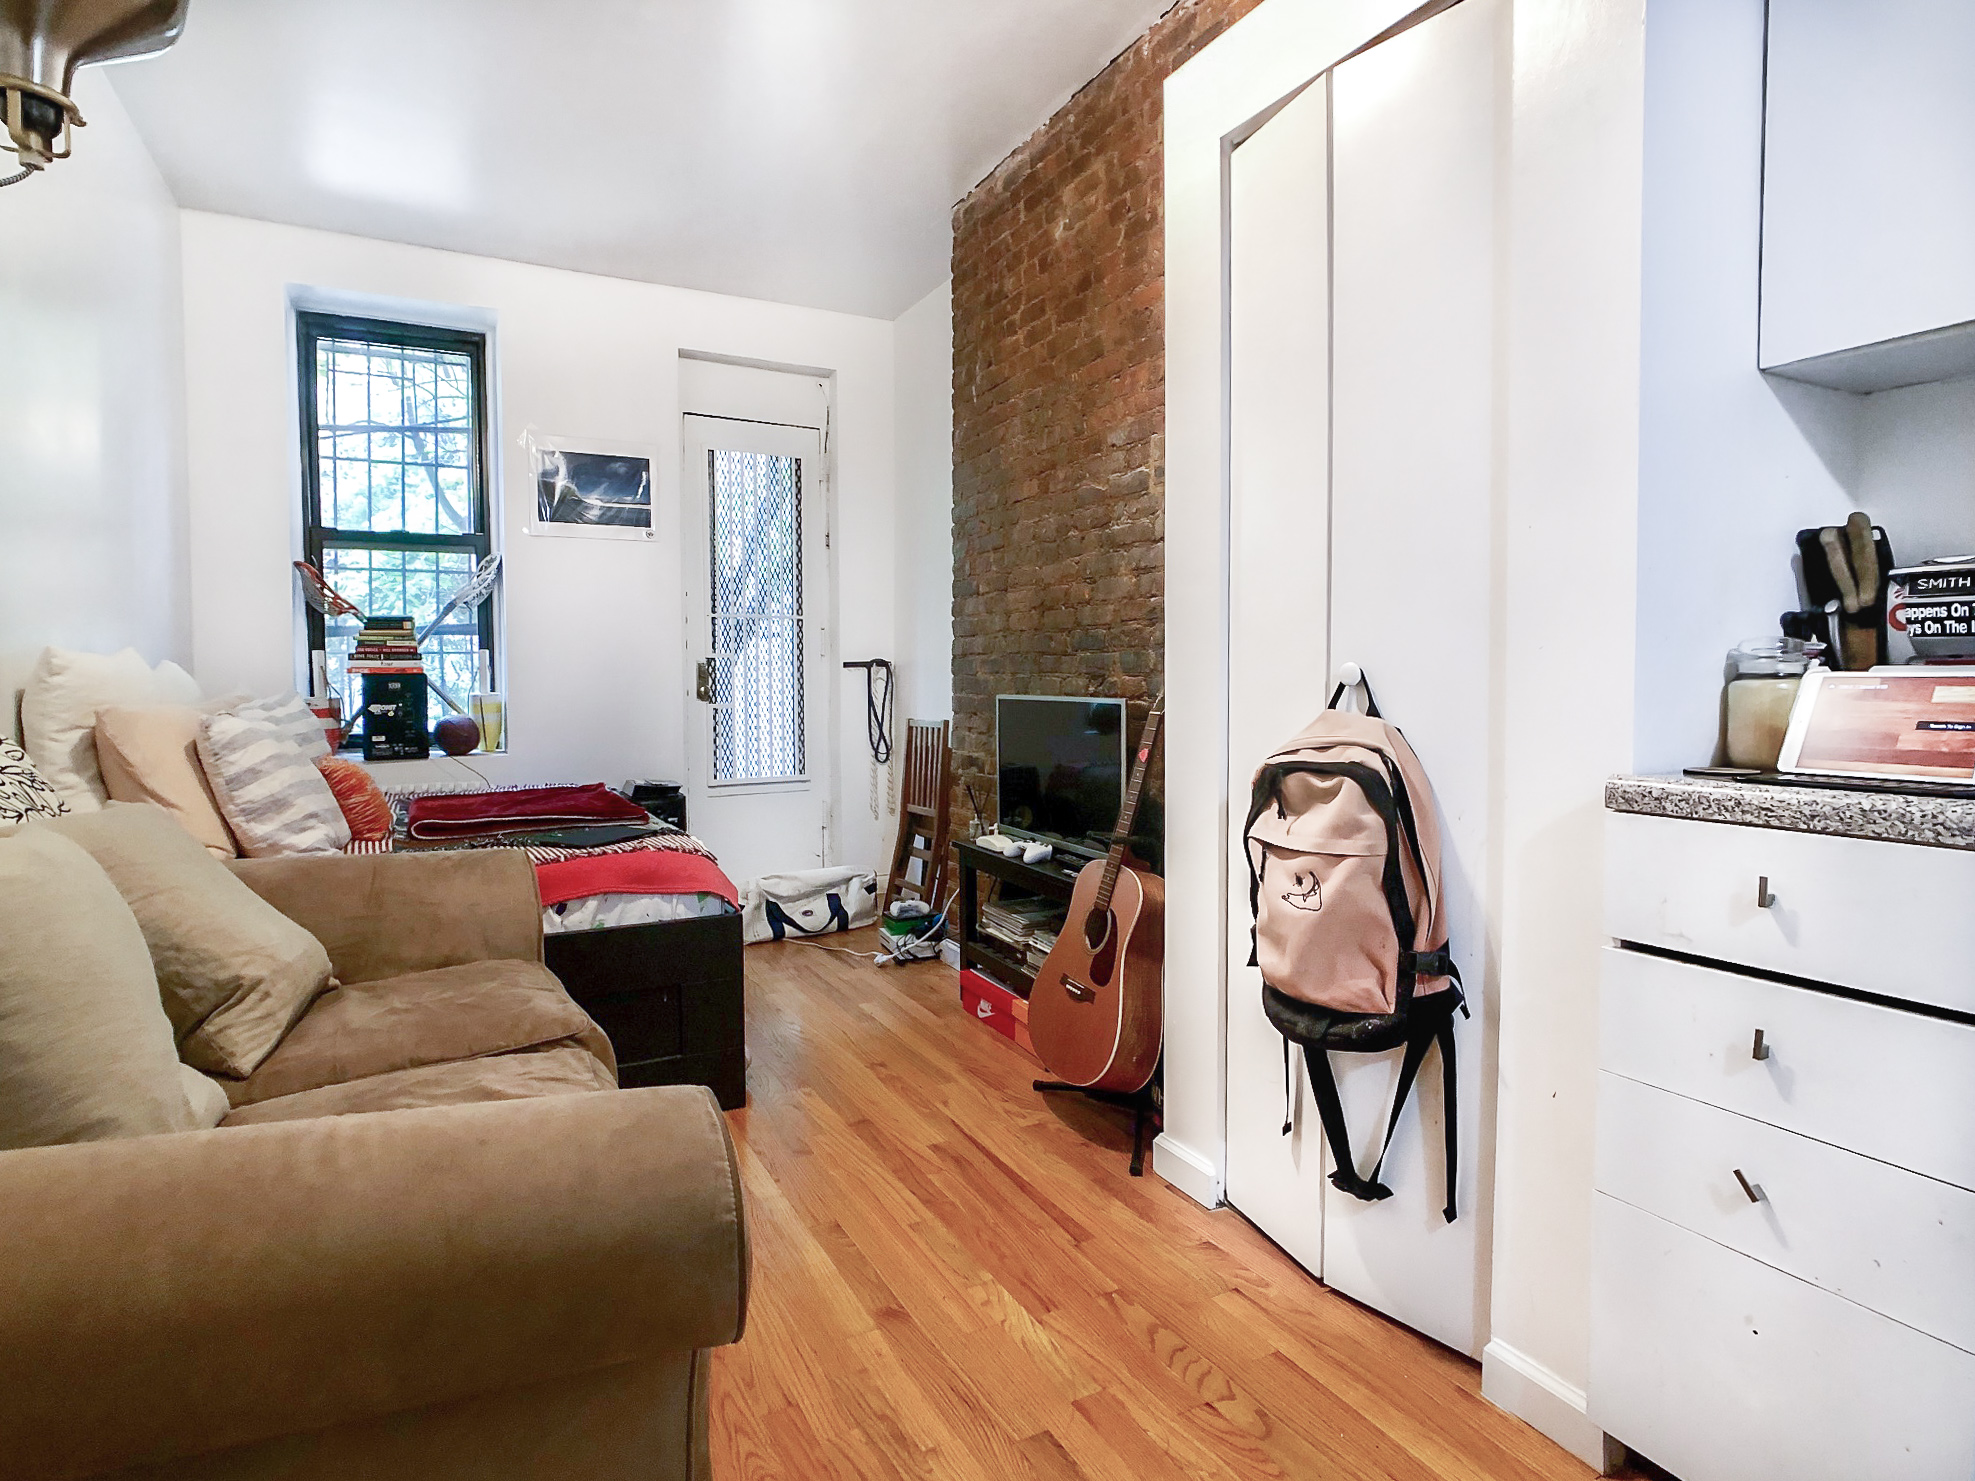 236 E 7 Street #1D - Charming Studio with shared outdoor space!Located in a walk up building on a quiet block of East village. Close to public transportation, cafes, shops and night life!Rent: $1,700 /monthTerms: 12 - 12 MonthsAvailable: Immediate